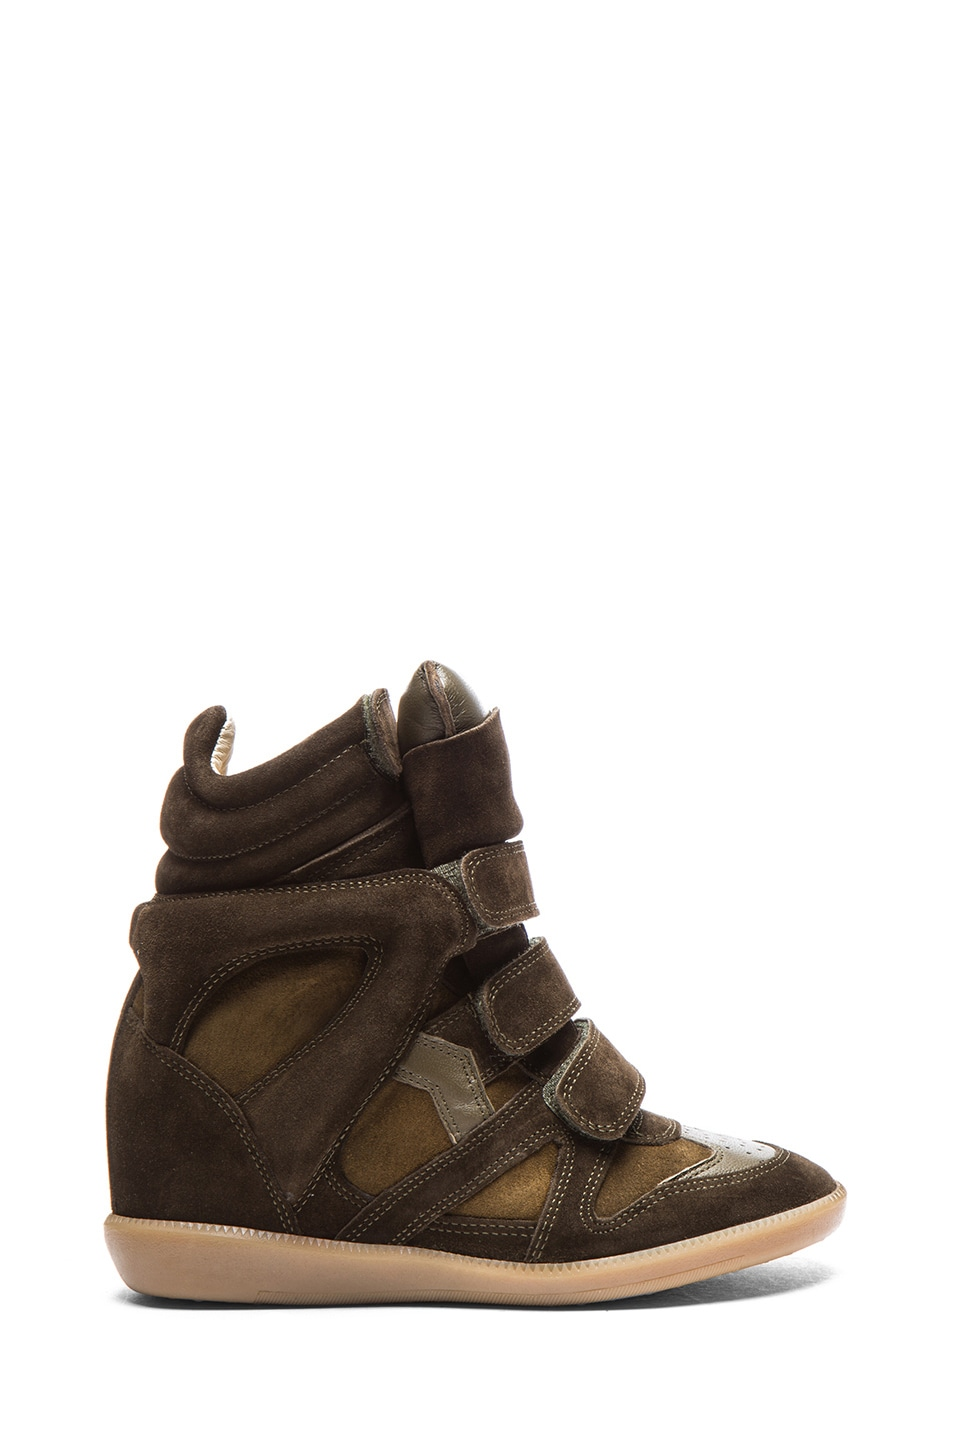 Image 1 of Isabel Marant Bekett Calfskin Velvet Leather Wedge Sneakers in Khaki